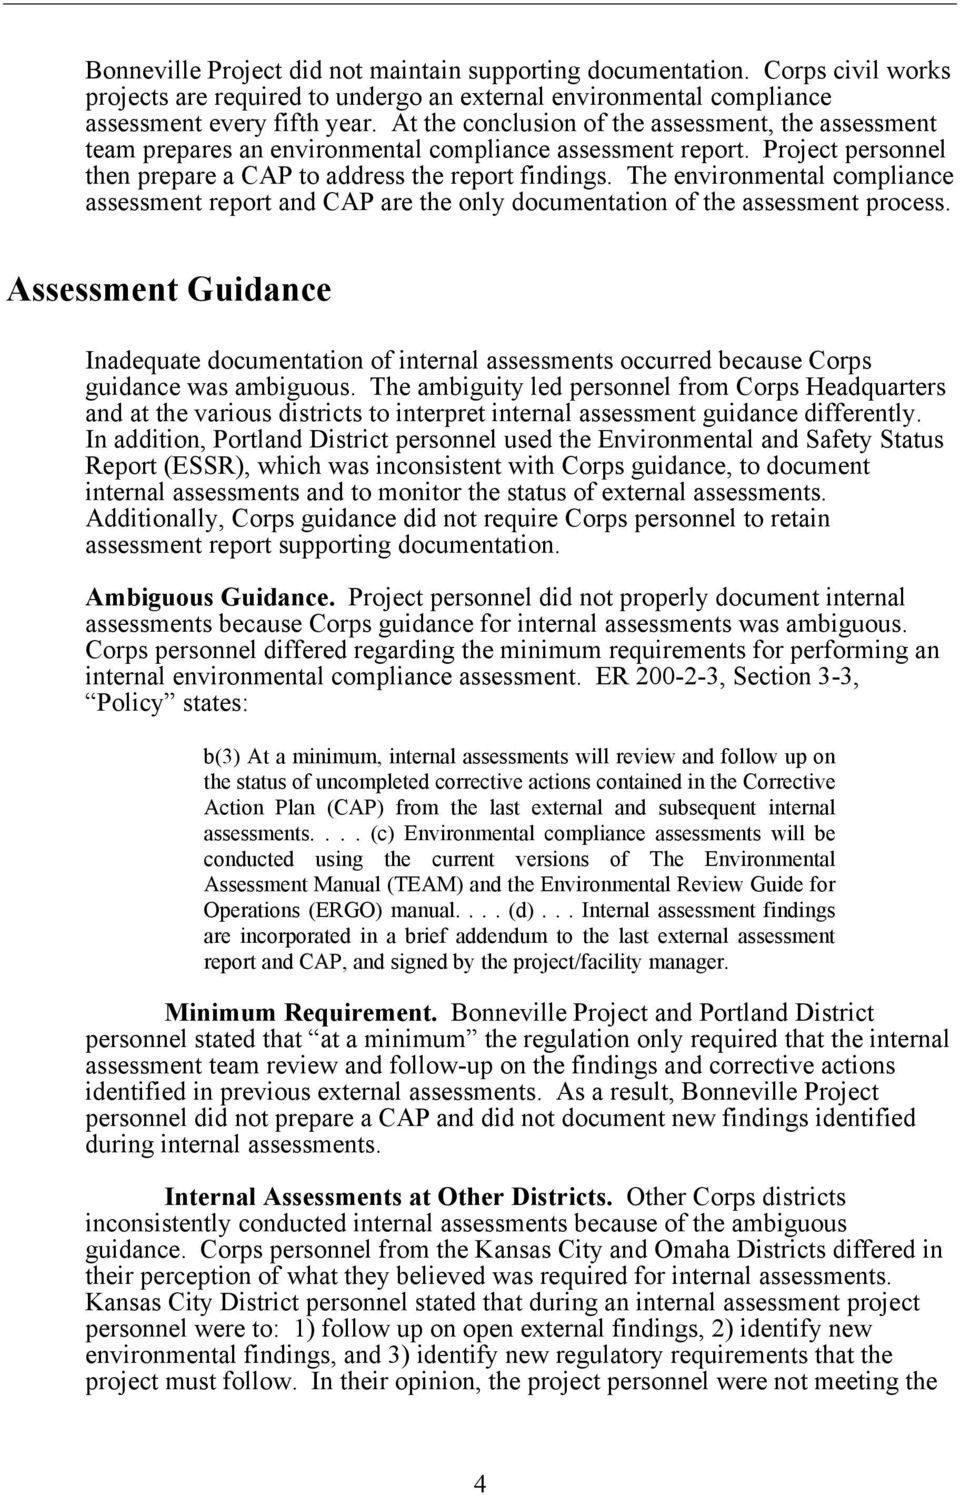 The environmental compliance assessment report and CAP are the only documentation of the assessment process.